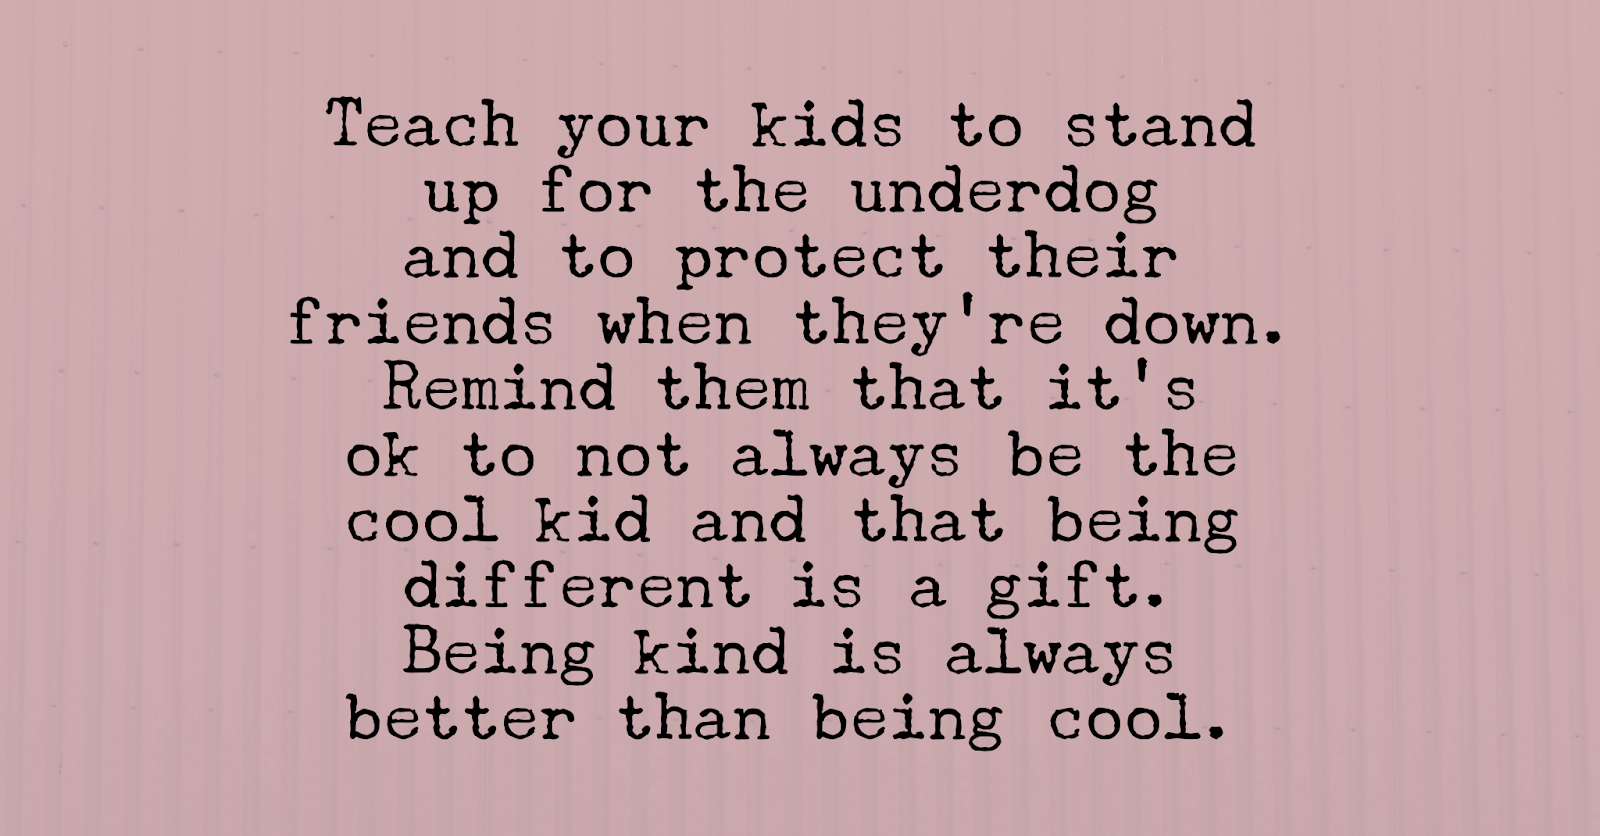 5 Ways To Inspire Your Kid To Become A Kind, Caring Adult